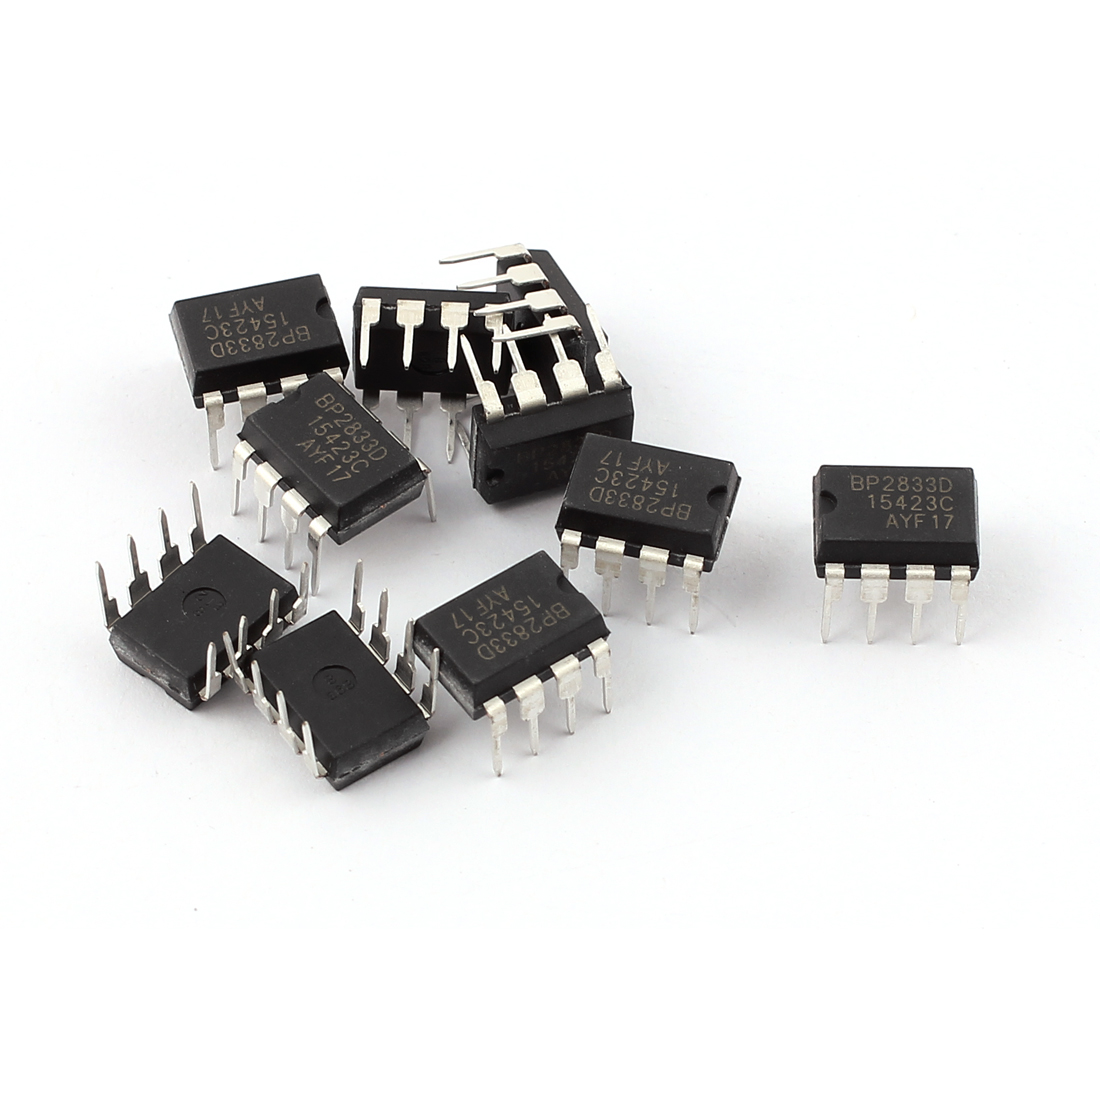 10Pcs BP2833D Replacement DIP-8 Package Type SMT LED Driver IC